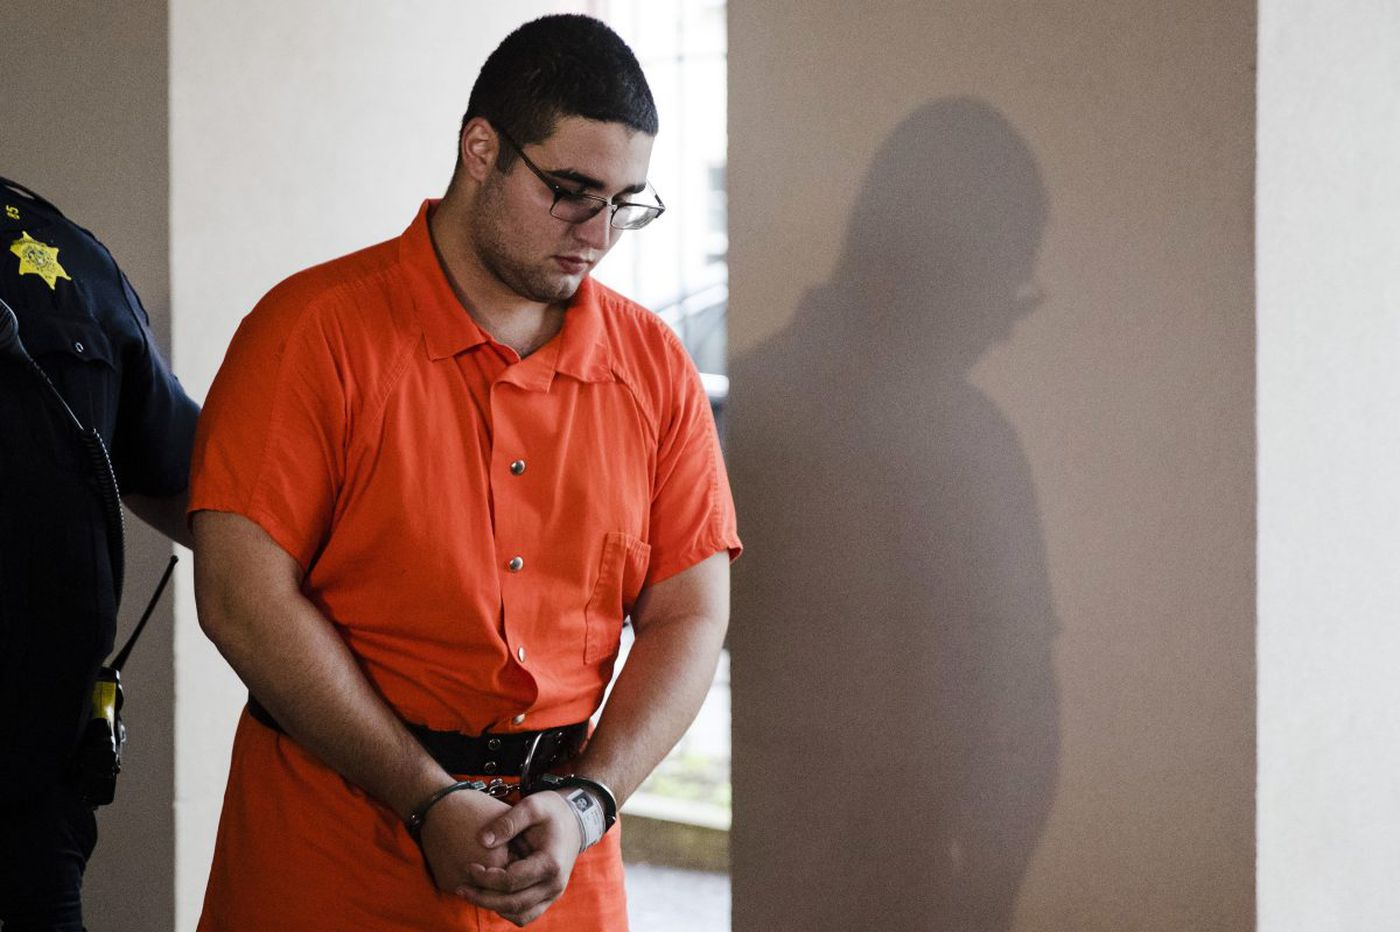 Cosmo DiNardo confesses to killing four men, claims he had an accomplice